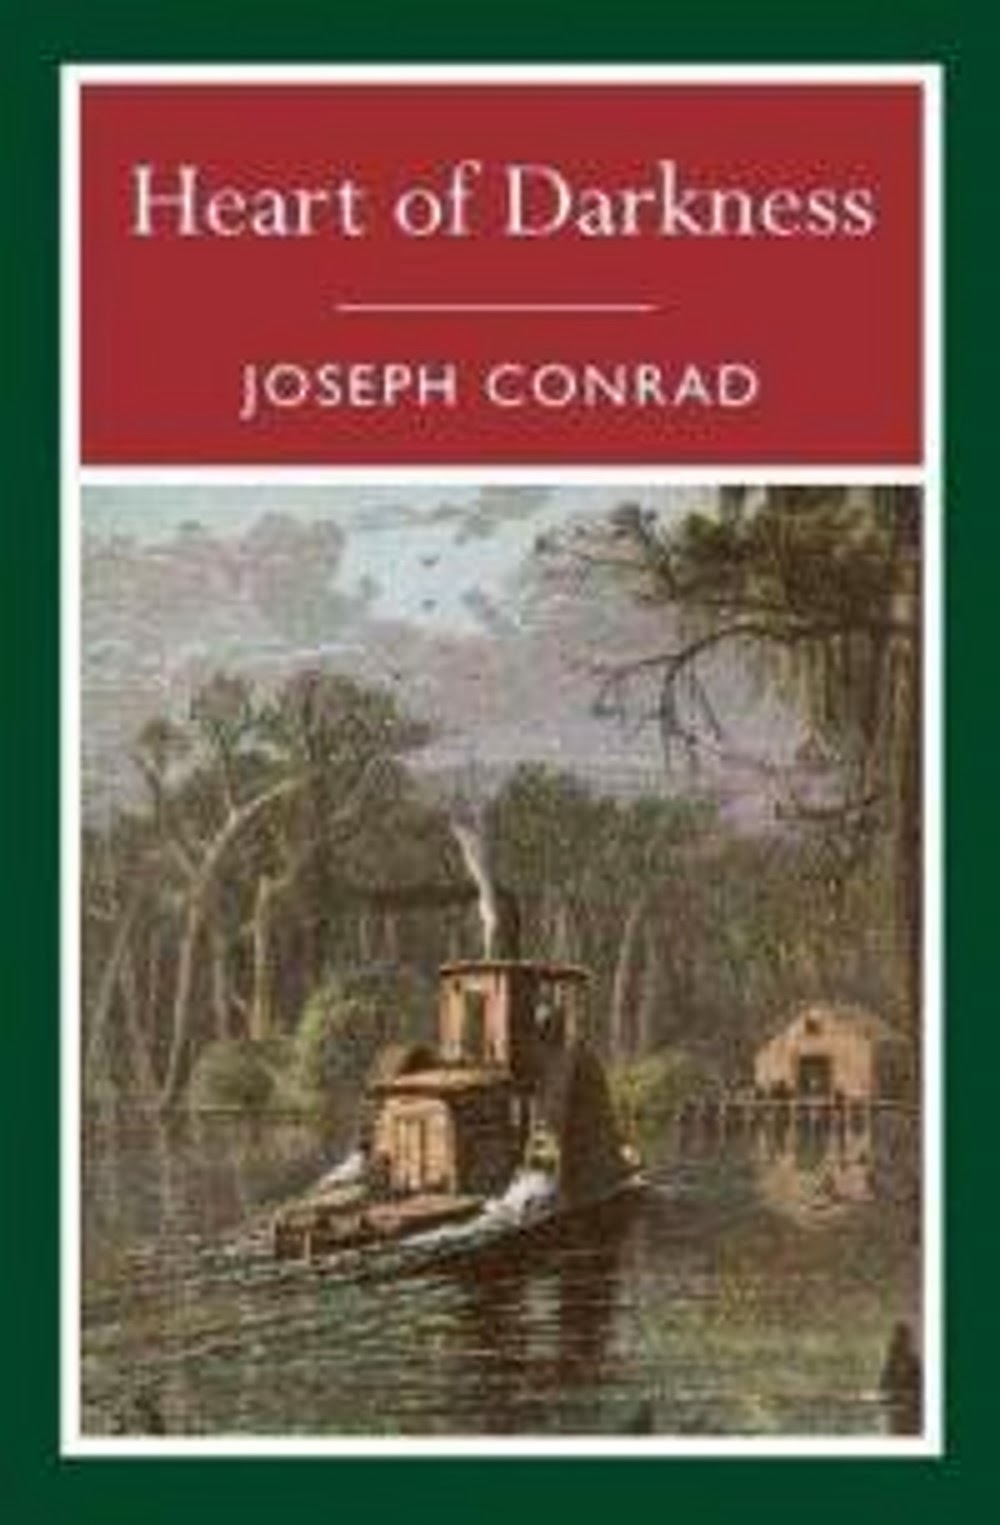 an analysis of the victorian and modern literary values in joseph conrads heart of darkness Joseph conrad's heart of darkness the imperialism of heart of darkness english literature and therefore adds value to the argument that heart of darkness.